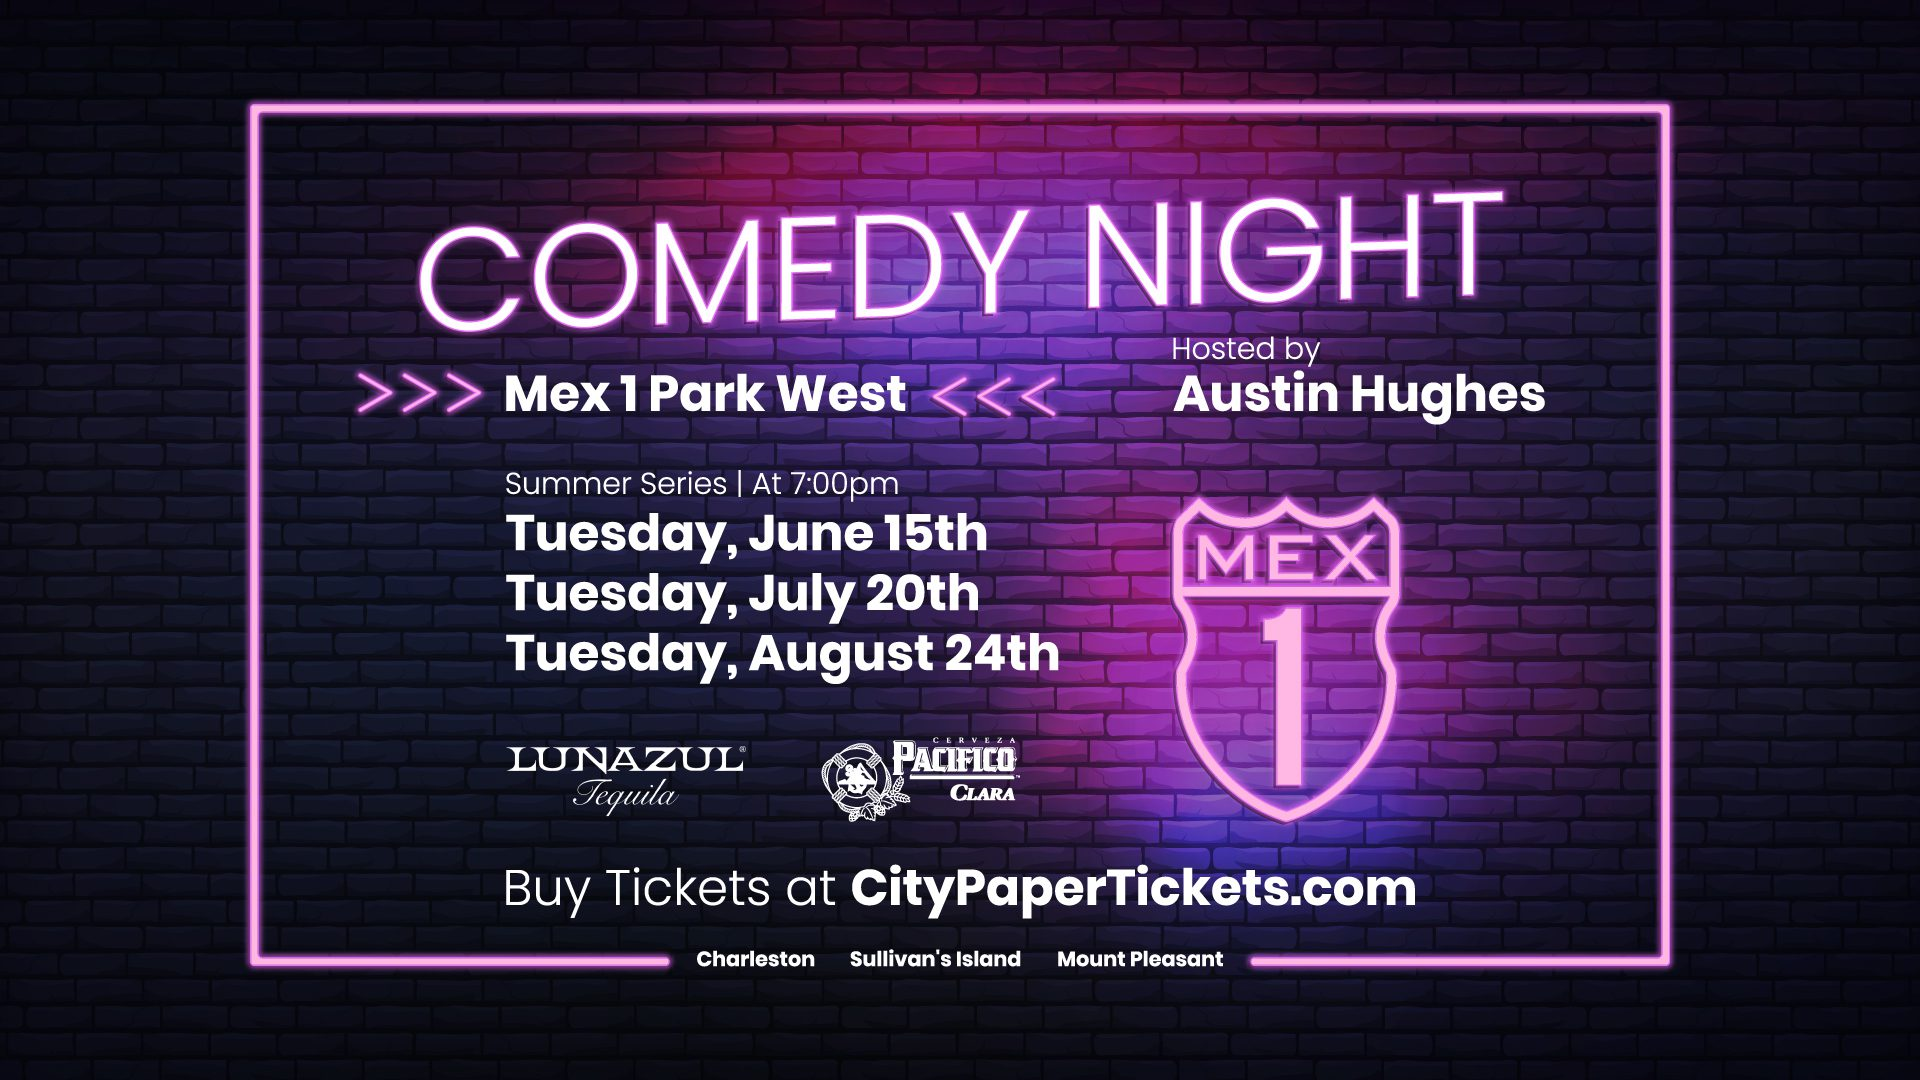 Comedy Night at Mex1 Park West